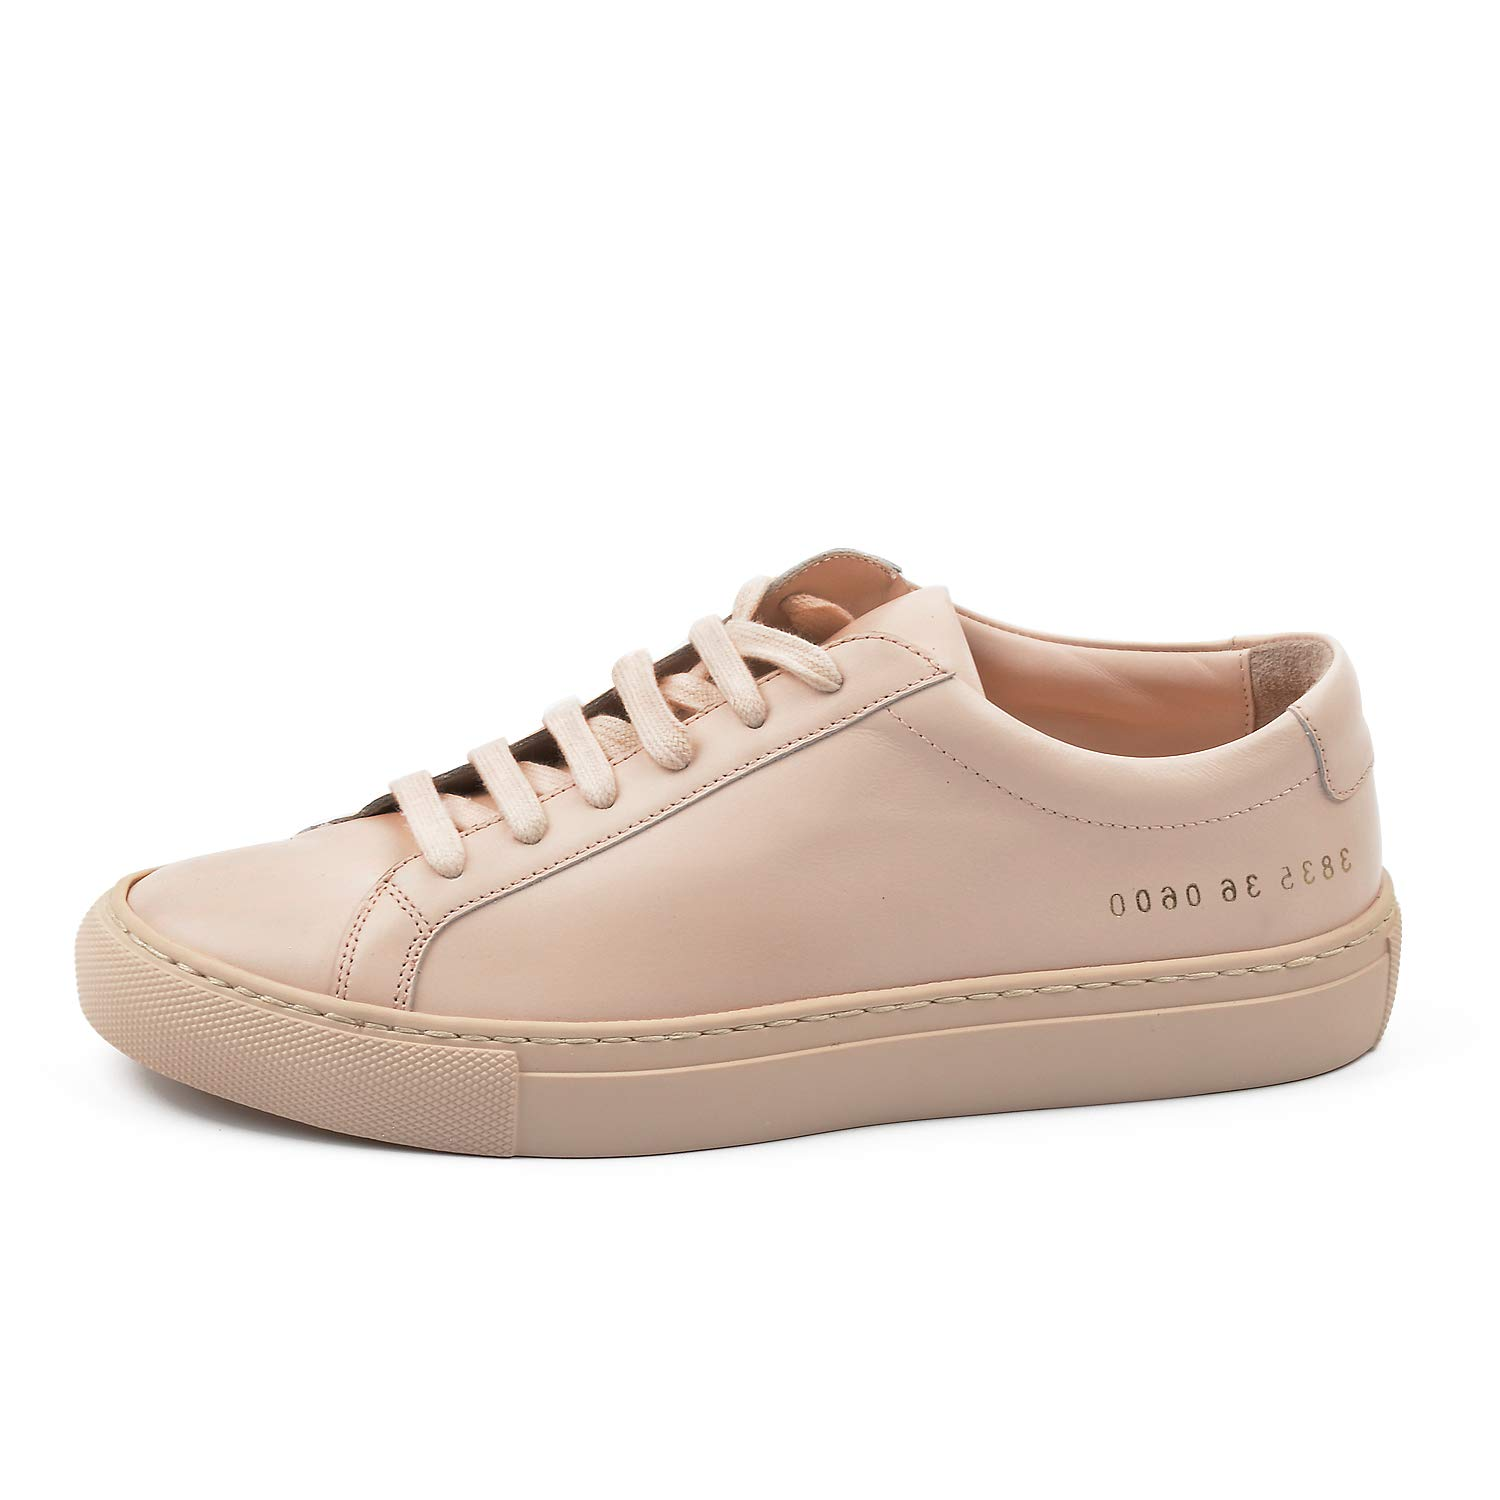 100% authentic official images website for discount DONNAIN Genuine Leather Sneakers for Women, Lace up Fashion Sneaker Womens,  White Casual Low Shoes